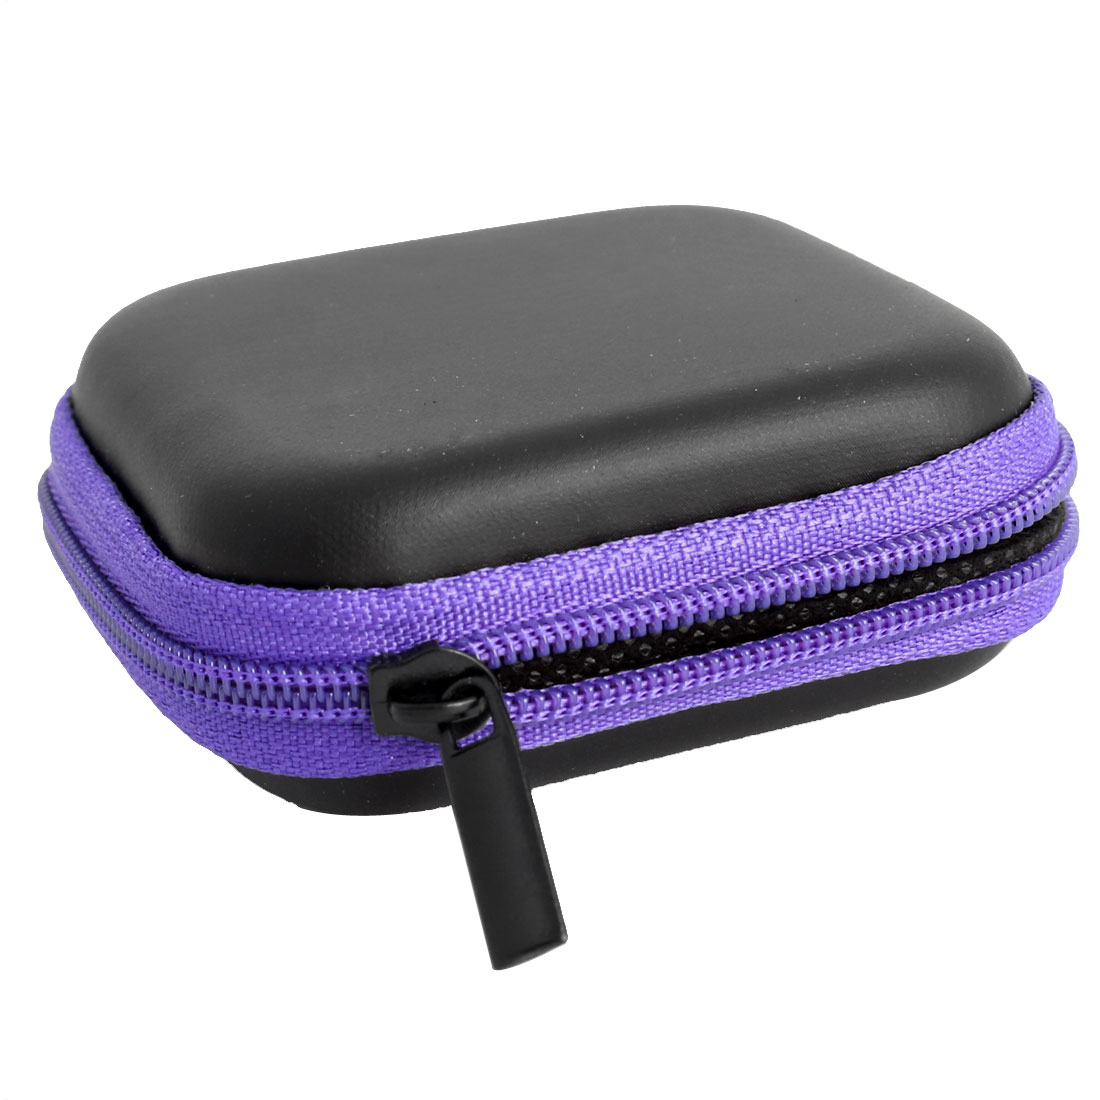 Cellphone Earphone Earbuds Square Carrying Cases Storage Bags Pouch Purple